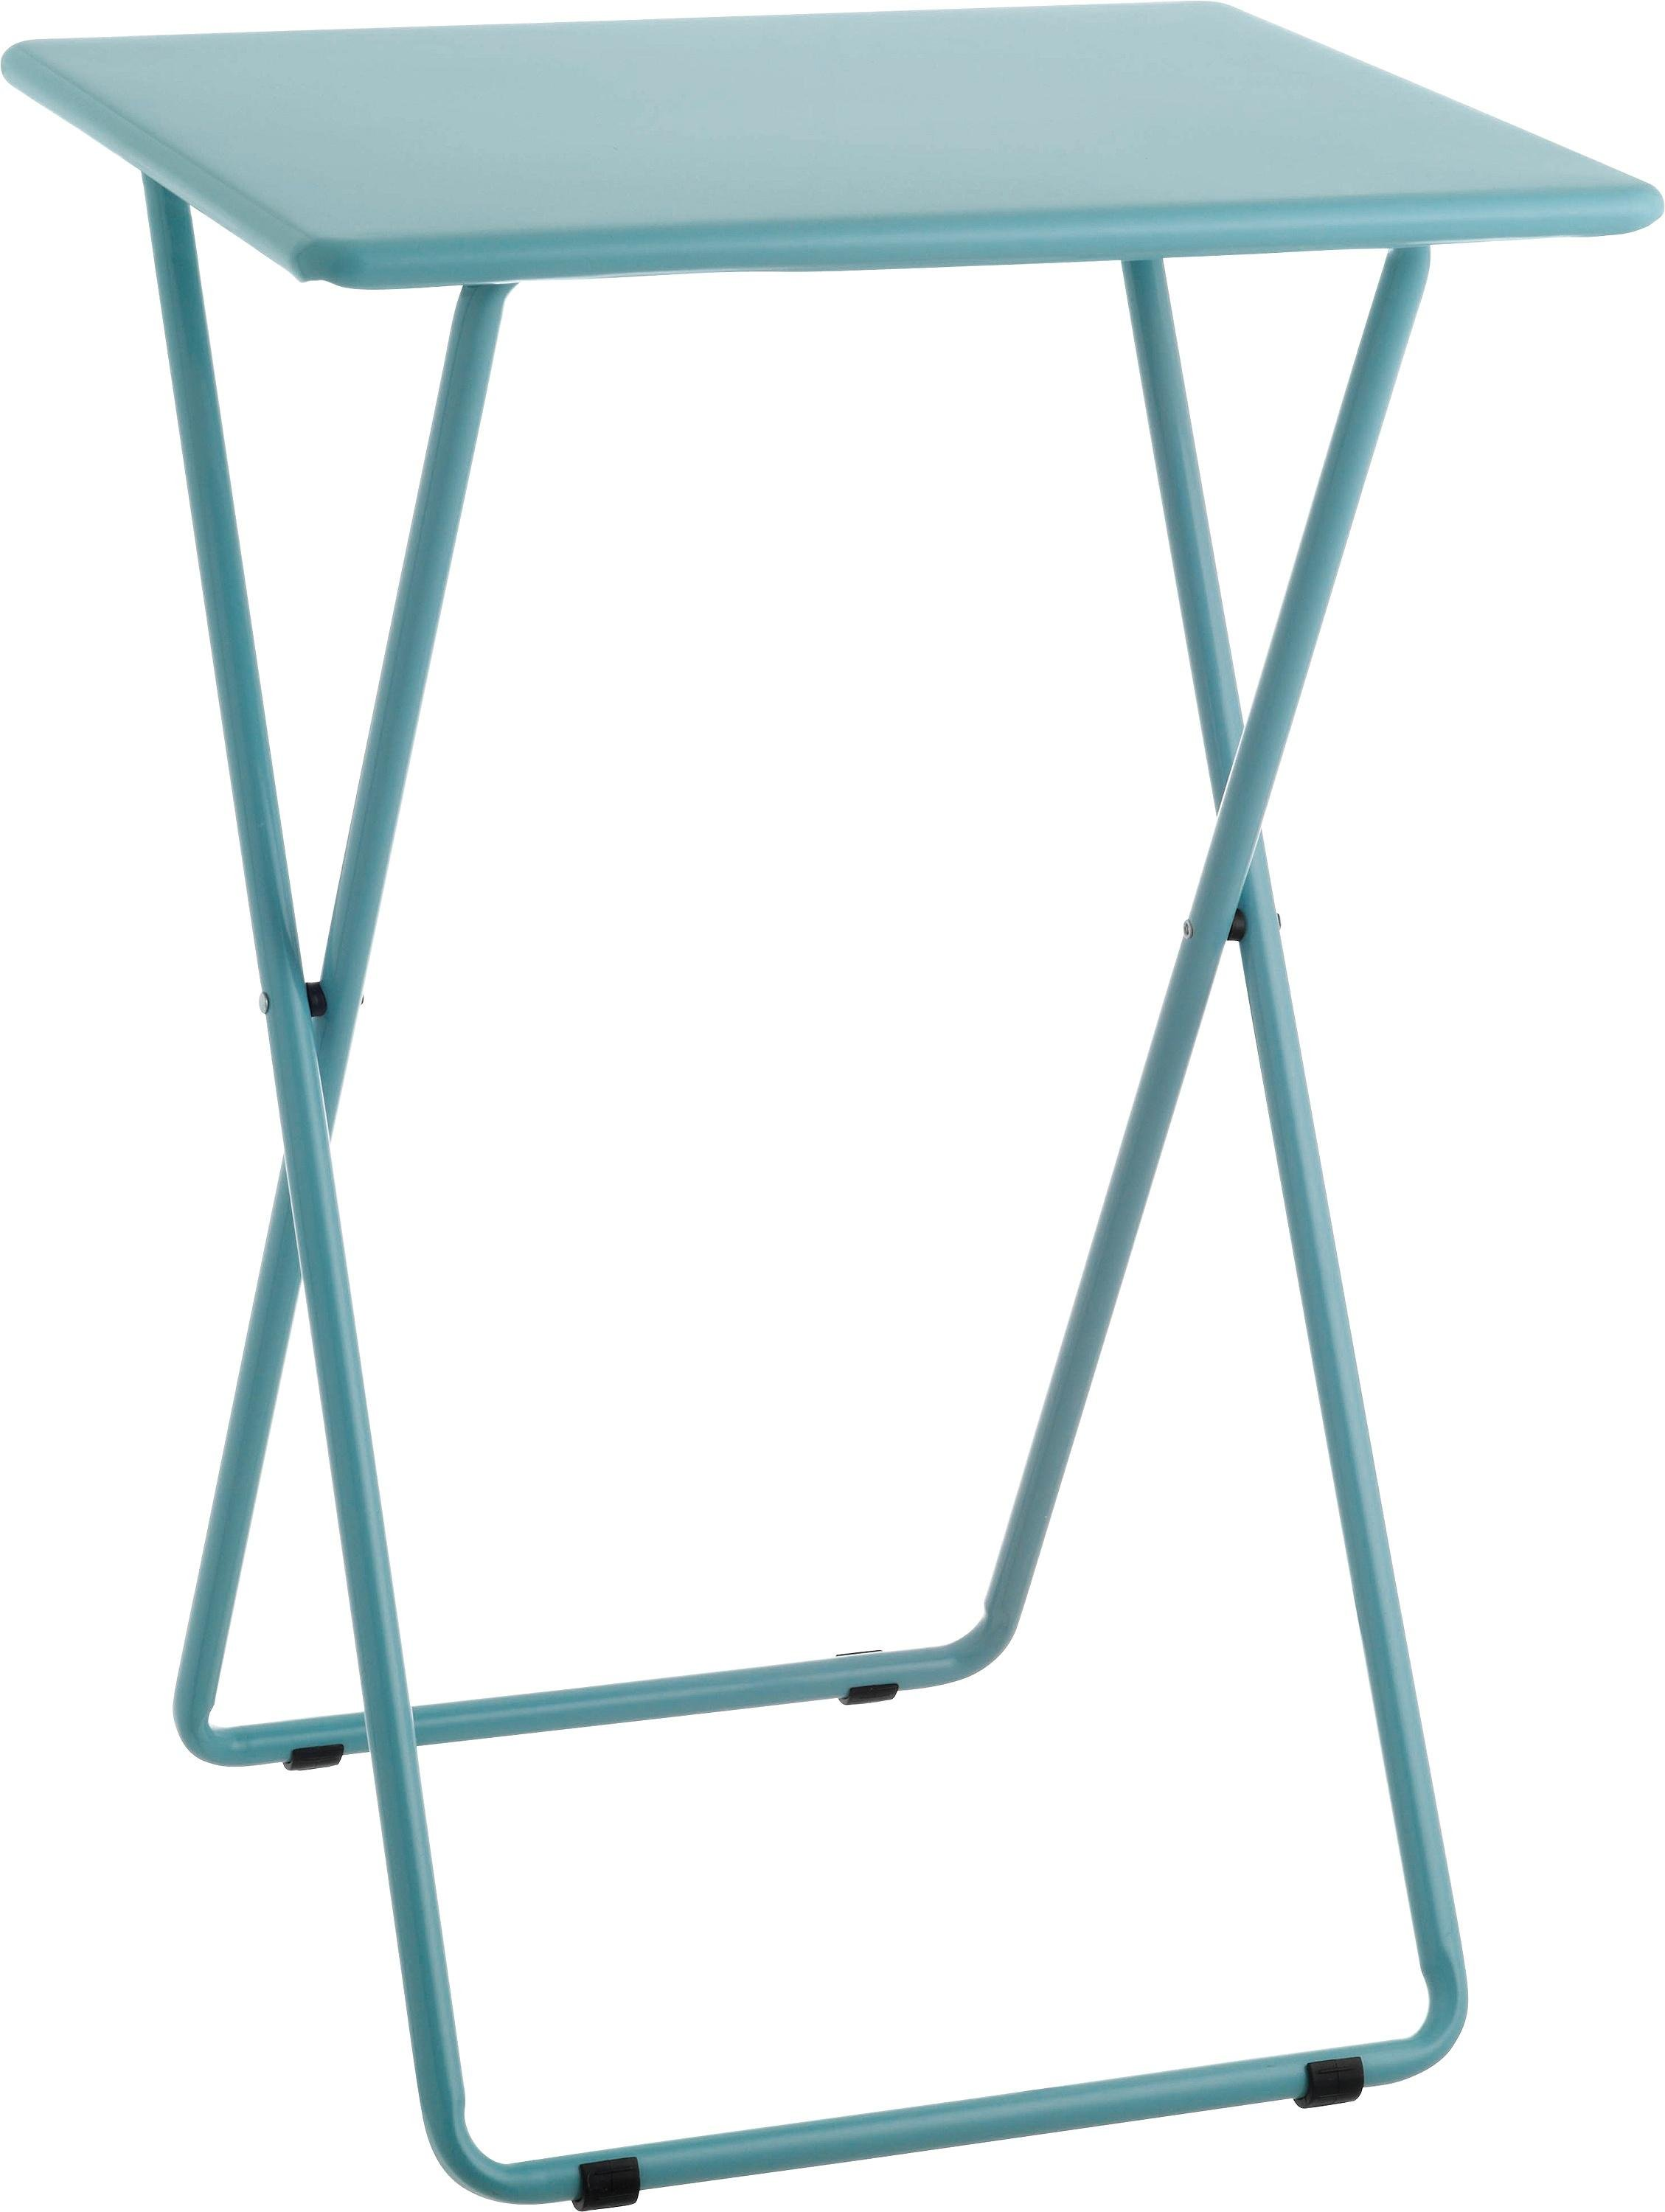 Habitat Airo Metal Folding Table - Sea Blue